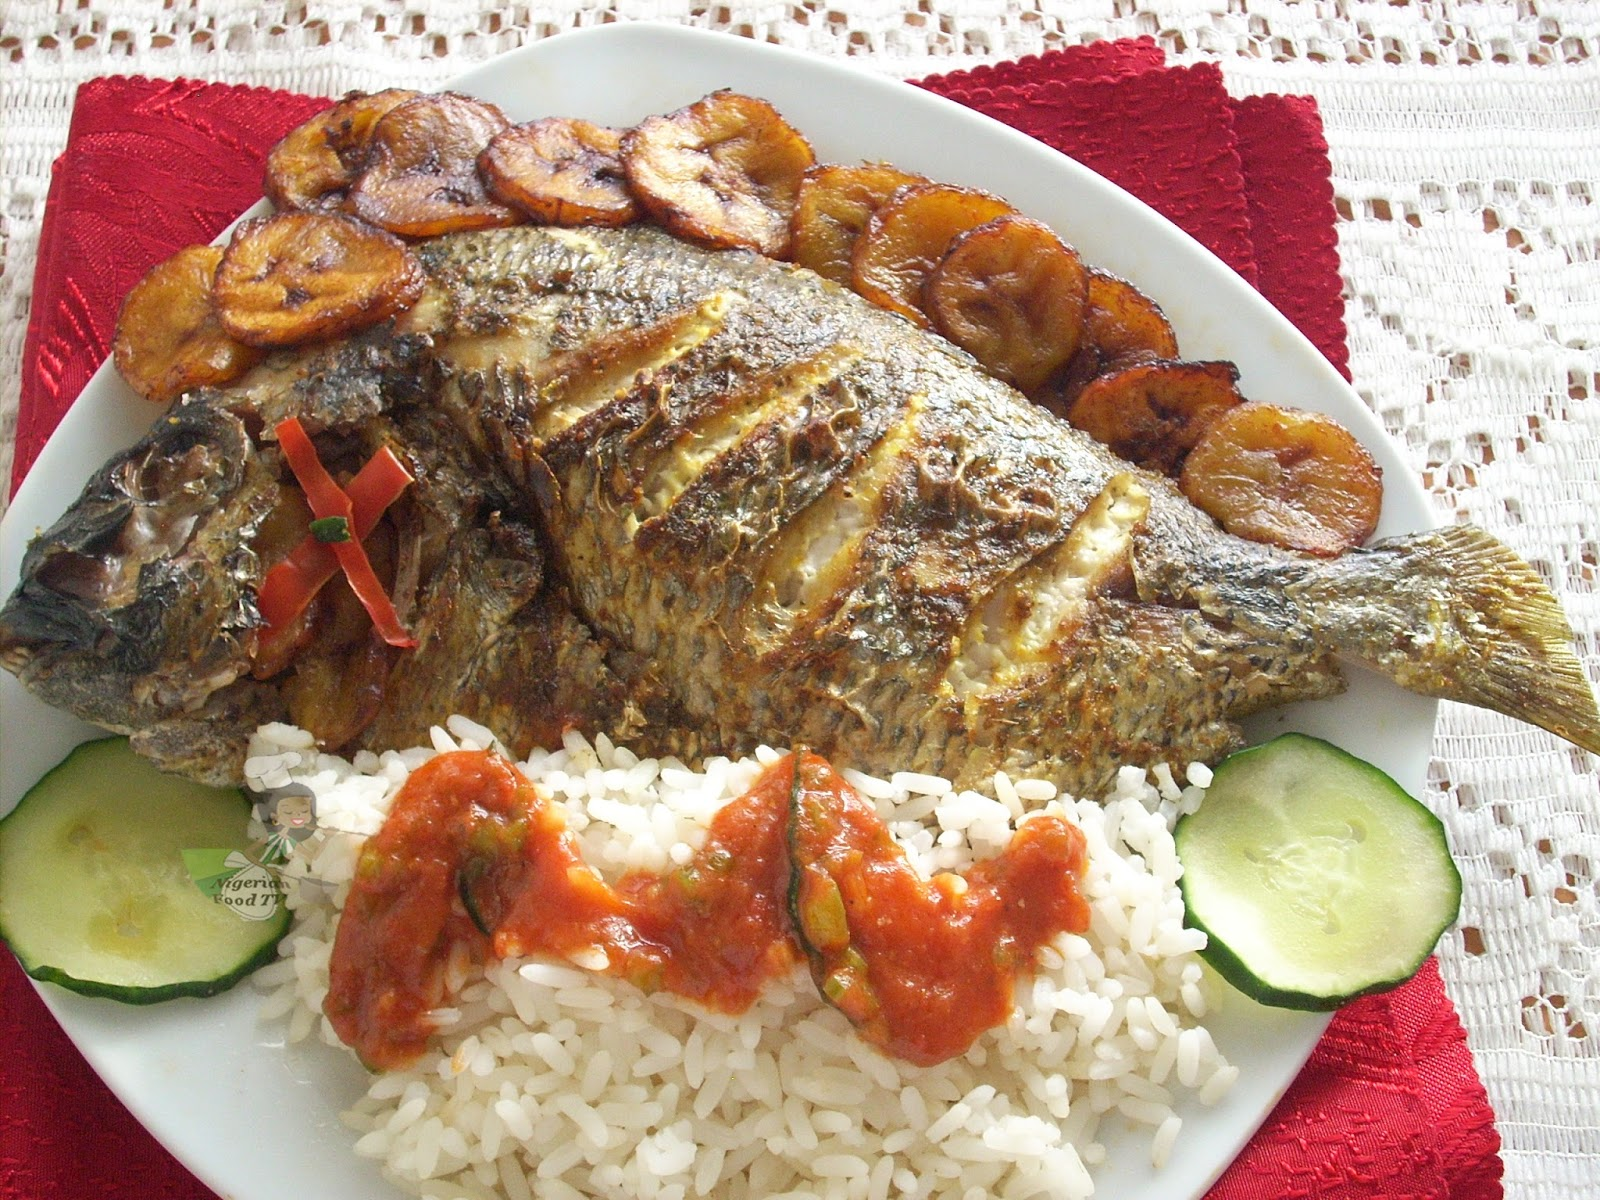 Nigerian food - medianet.info